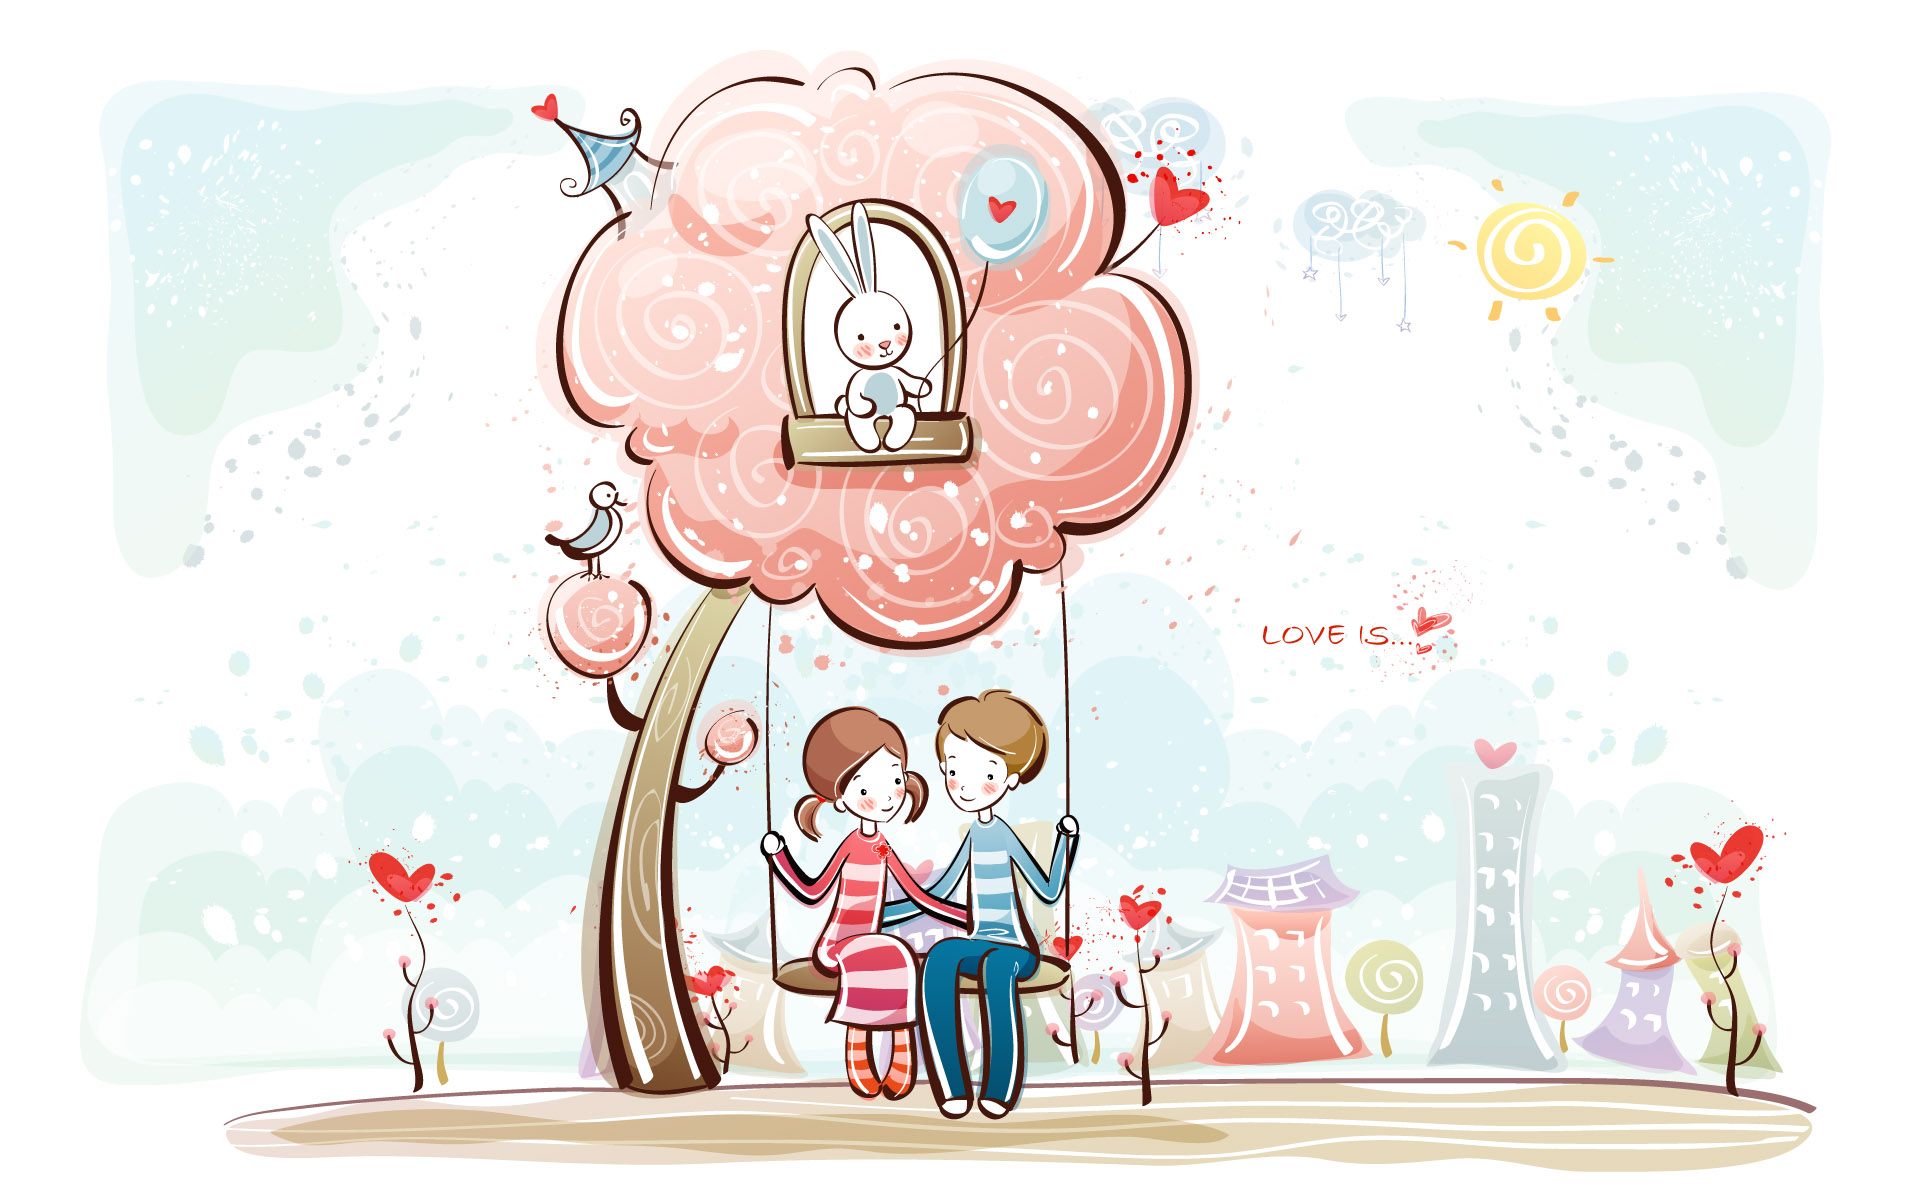 cartoon Wallpaper Of Love couple : couple in love under a tree wallpaper - 384155